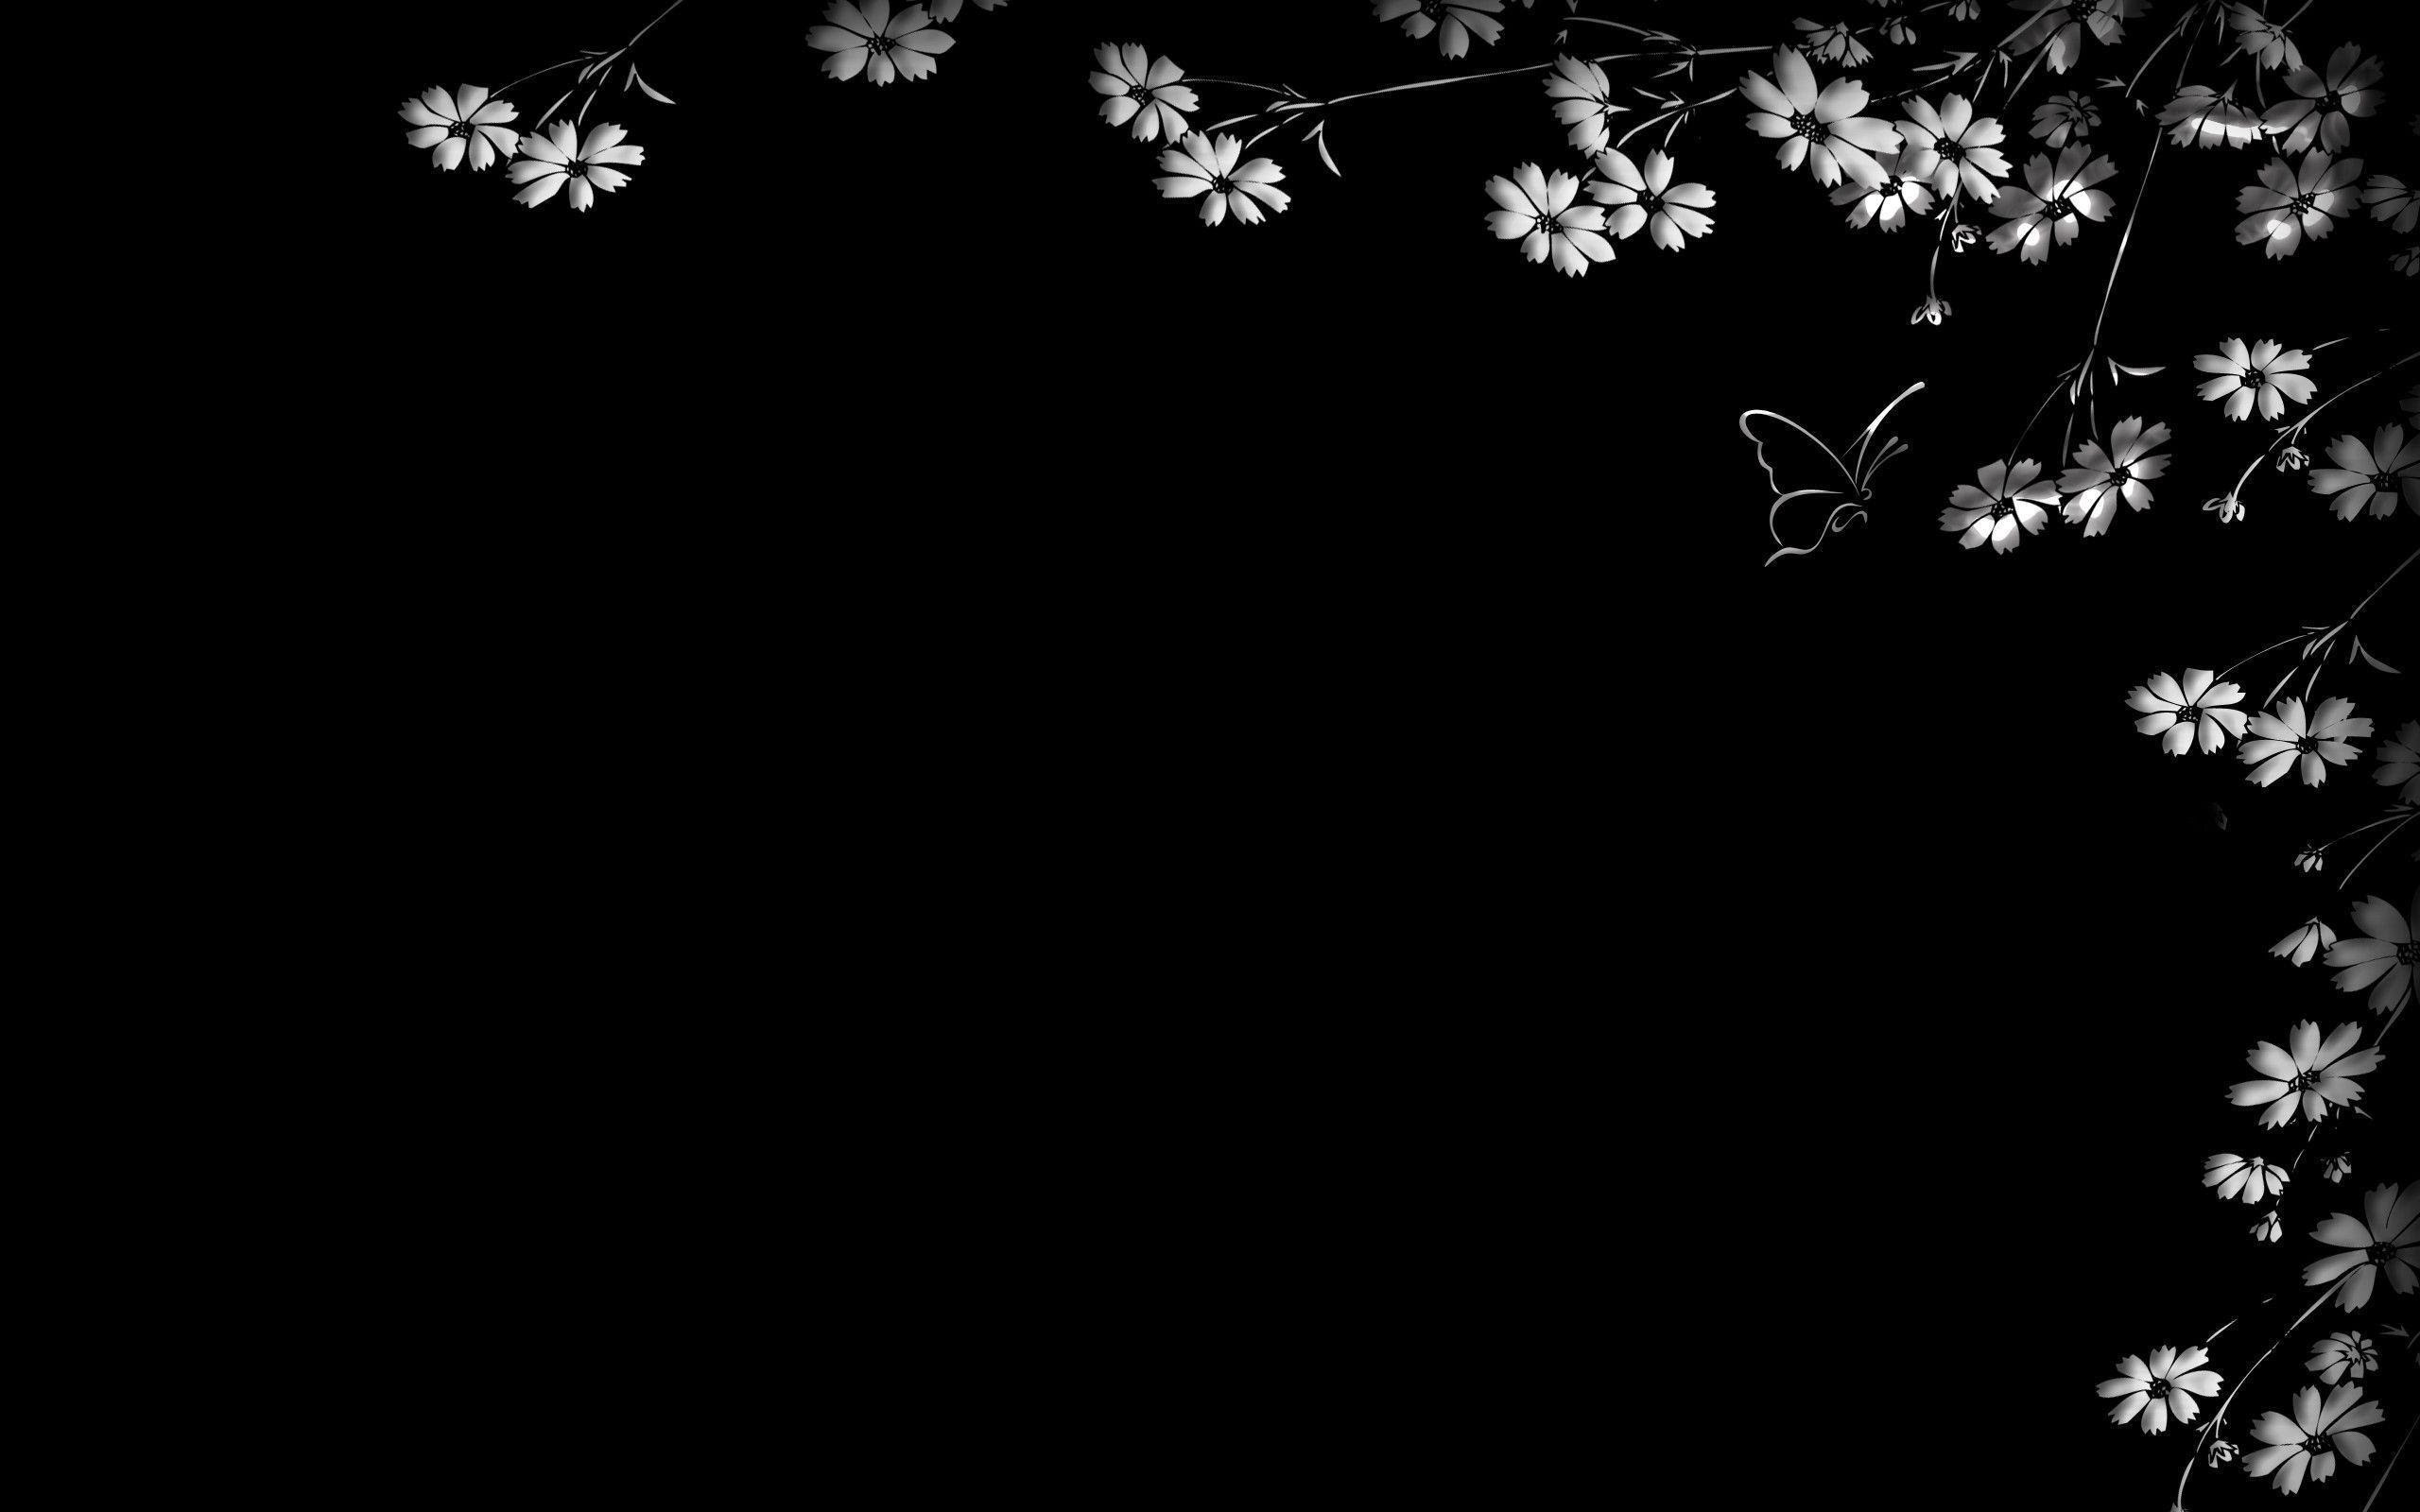 Black Butterfly Backgrounds - Wallpaper Cave